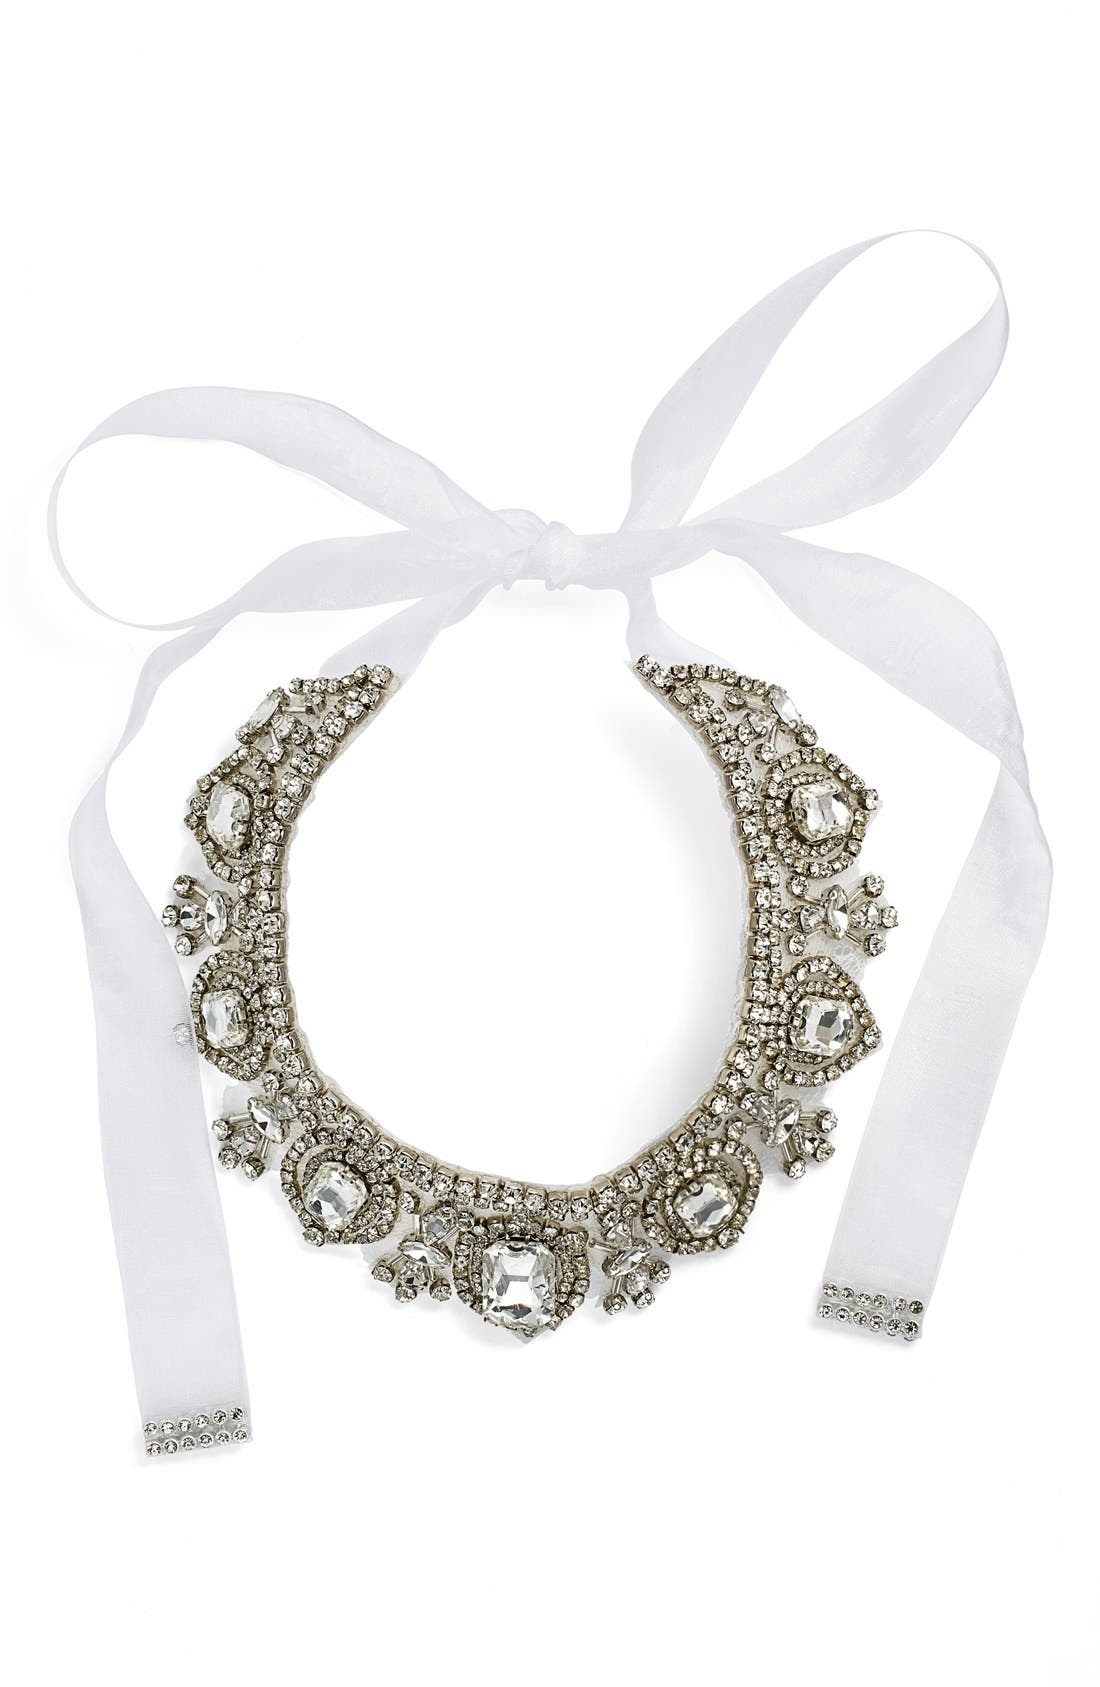 'Glamorous' Tie Collar Necklace,                         Main,                         color,